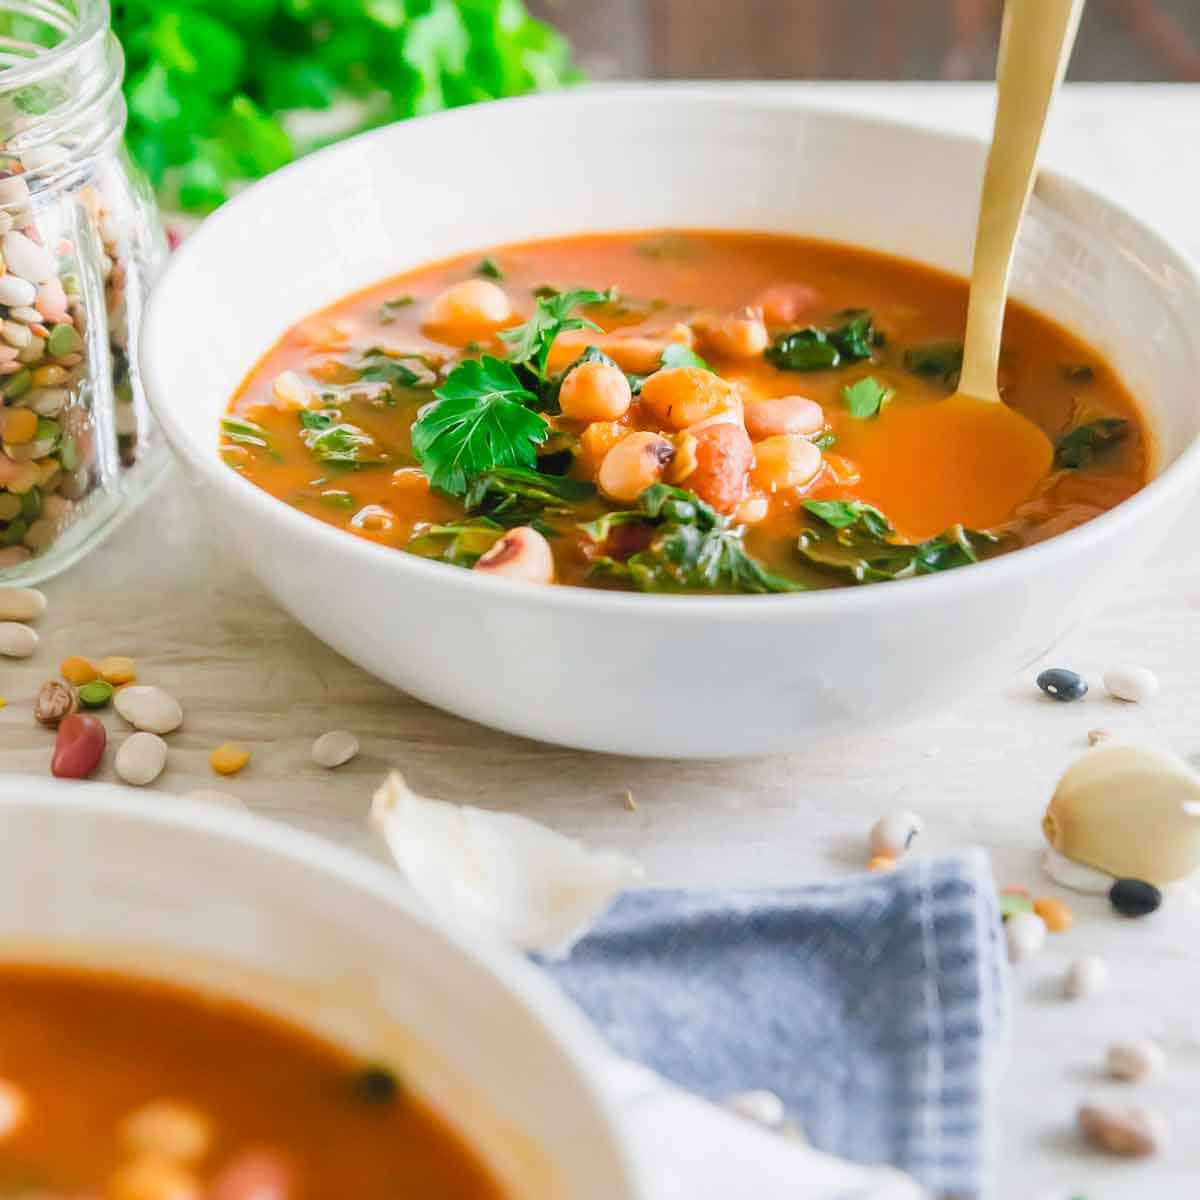 Hearty tomato based pressure cooker bean soup